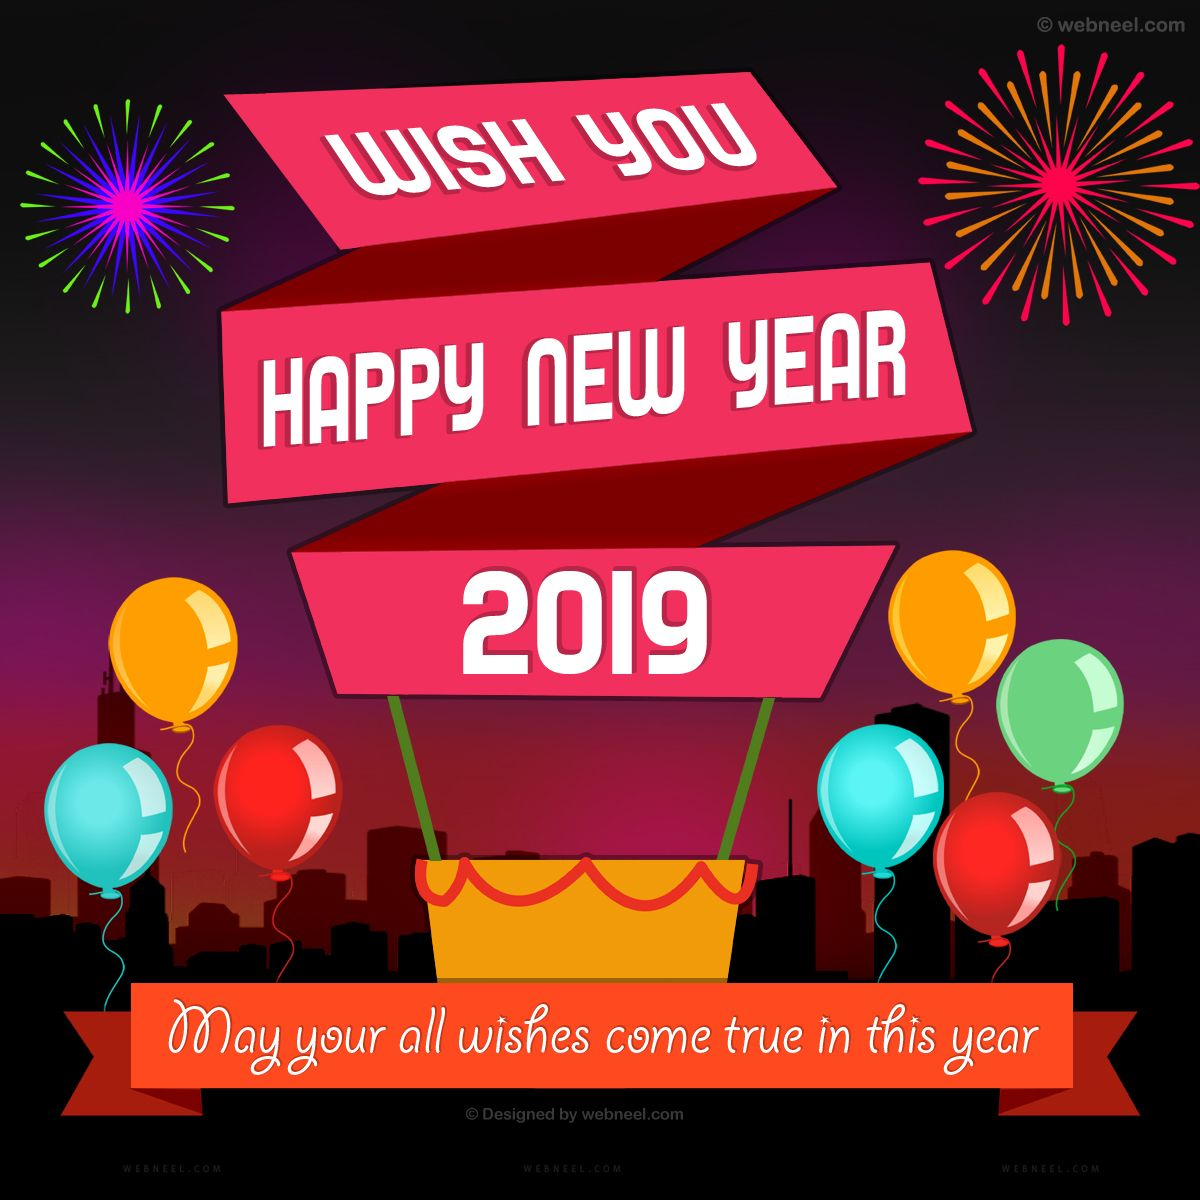 50 Best New Year Greeting Card Designs From Top Designers 2021 Happy New Year Cards Birthday Card Template Happy New Year Greetings